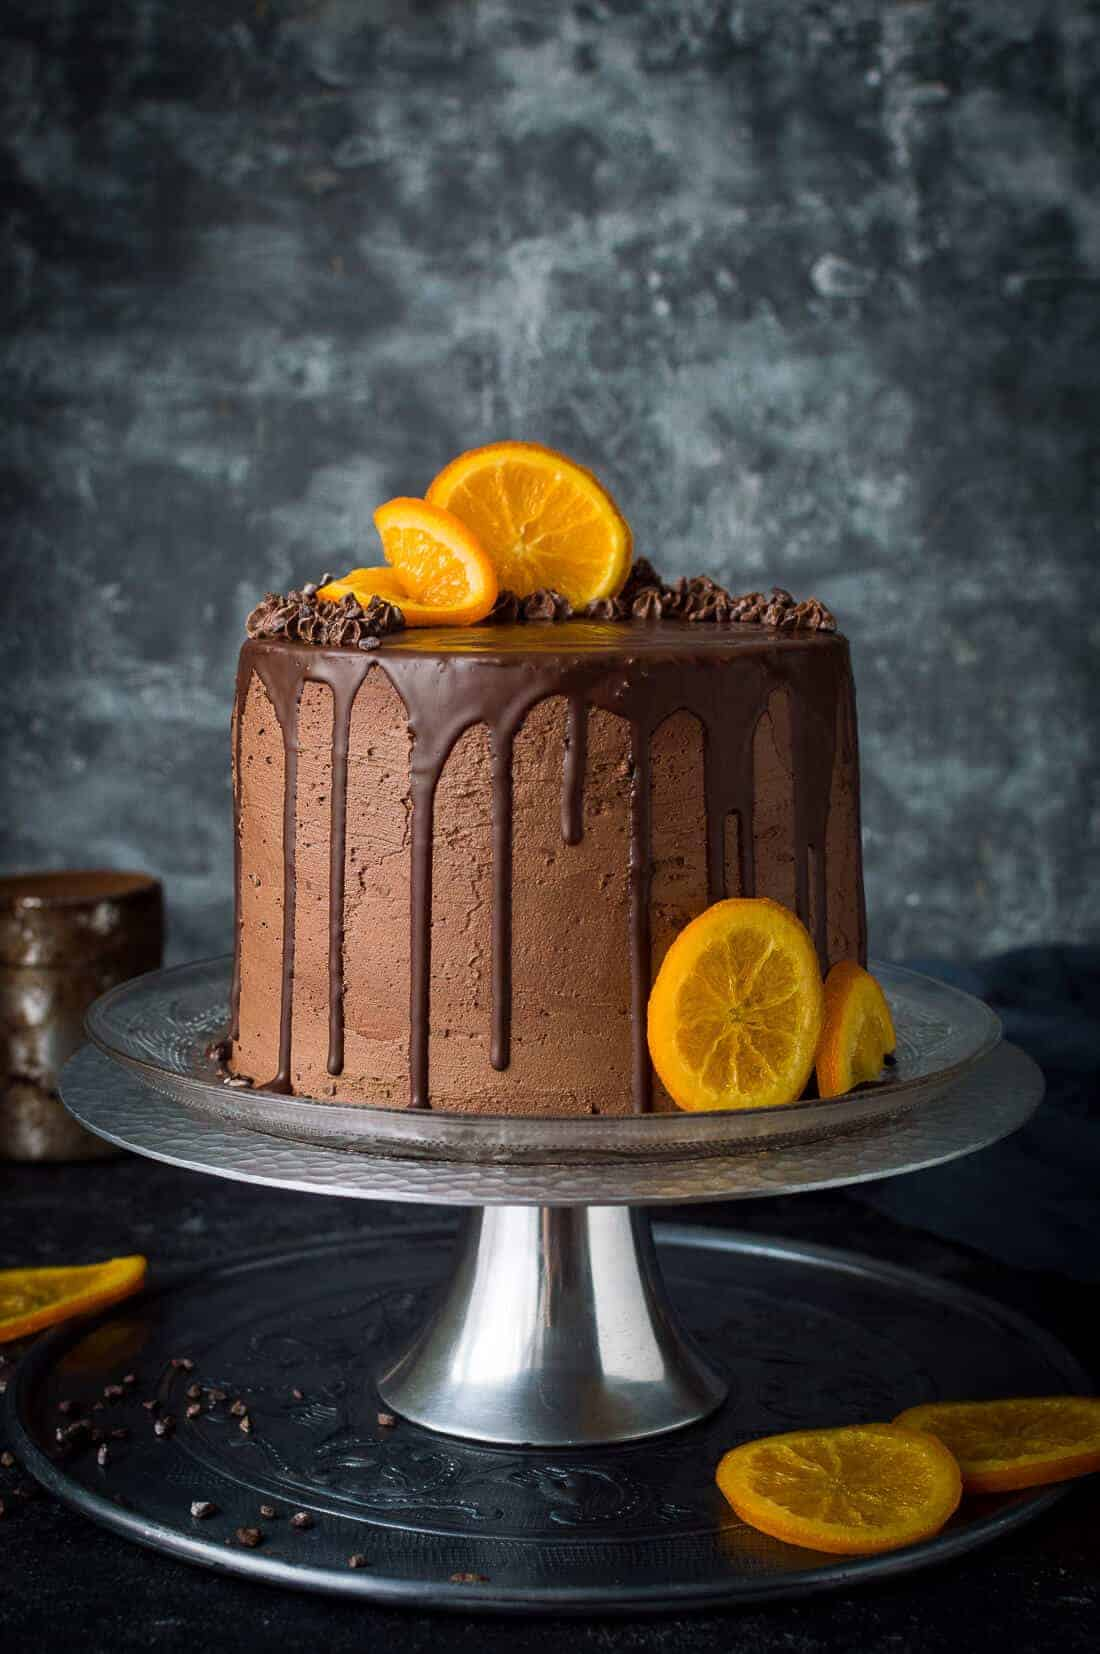 Vegan chocolate, orange and almond cake topped with chocolate drip and candied orange slices on a metal cake stand with a grey background